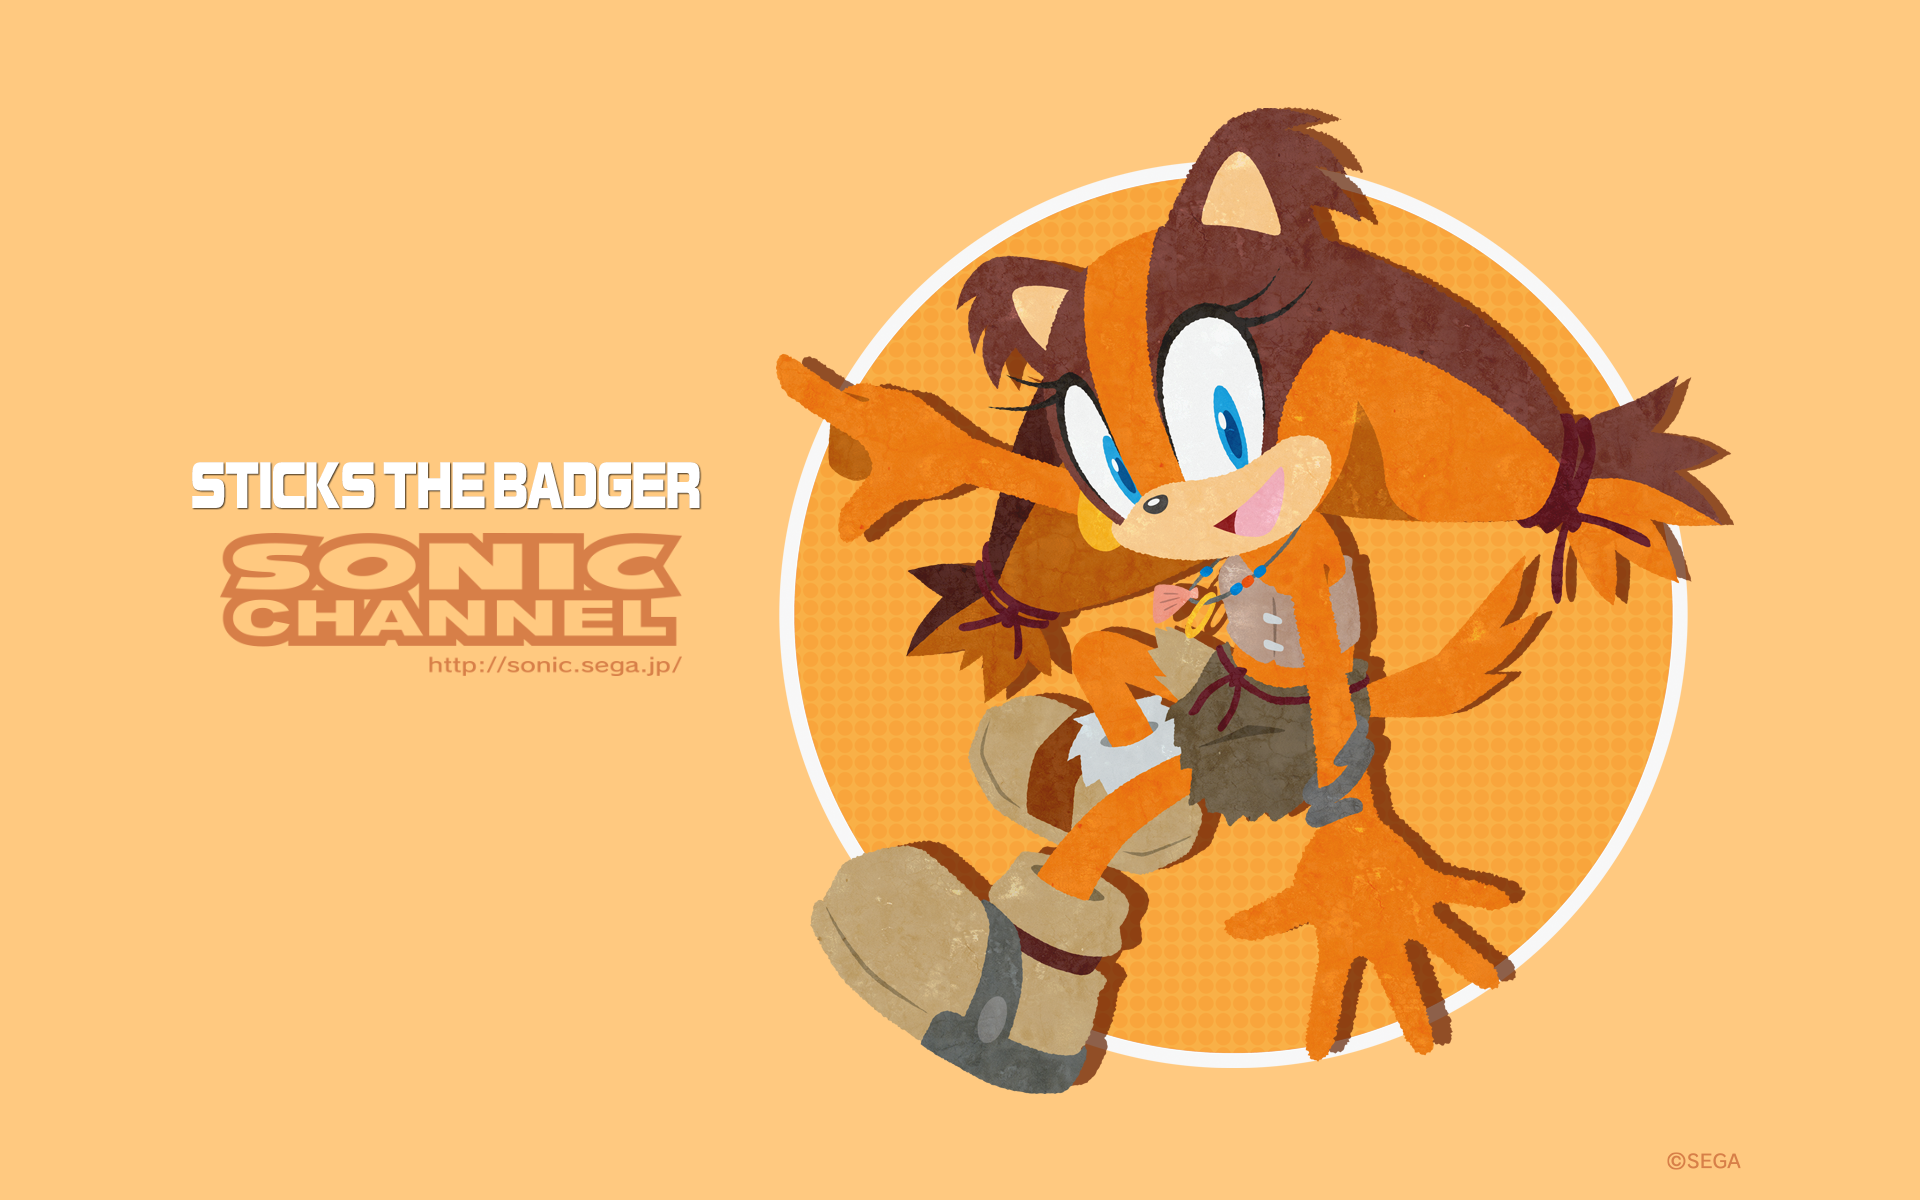 http://sonic.sega.jp/SonicChannel/enjoy/image/wallpaper_153_sticks_03_pc.png